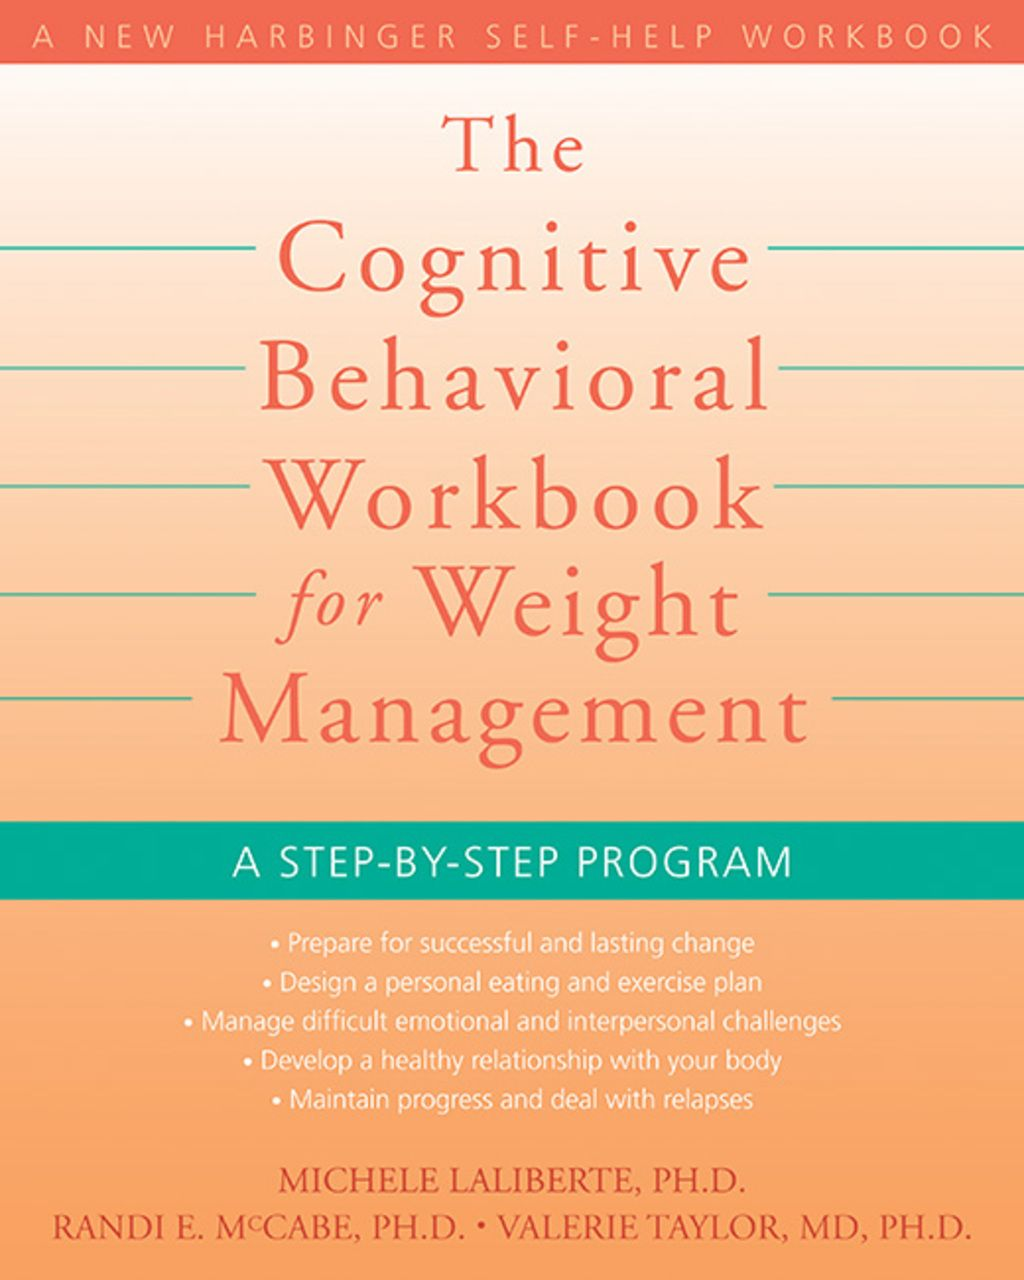 The Cognitive Behavioral Workbook For Weight Management A Step By Step Program Ebook Weight Management Step Program Self Help